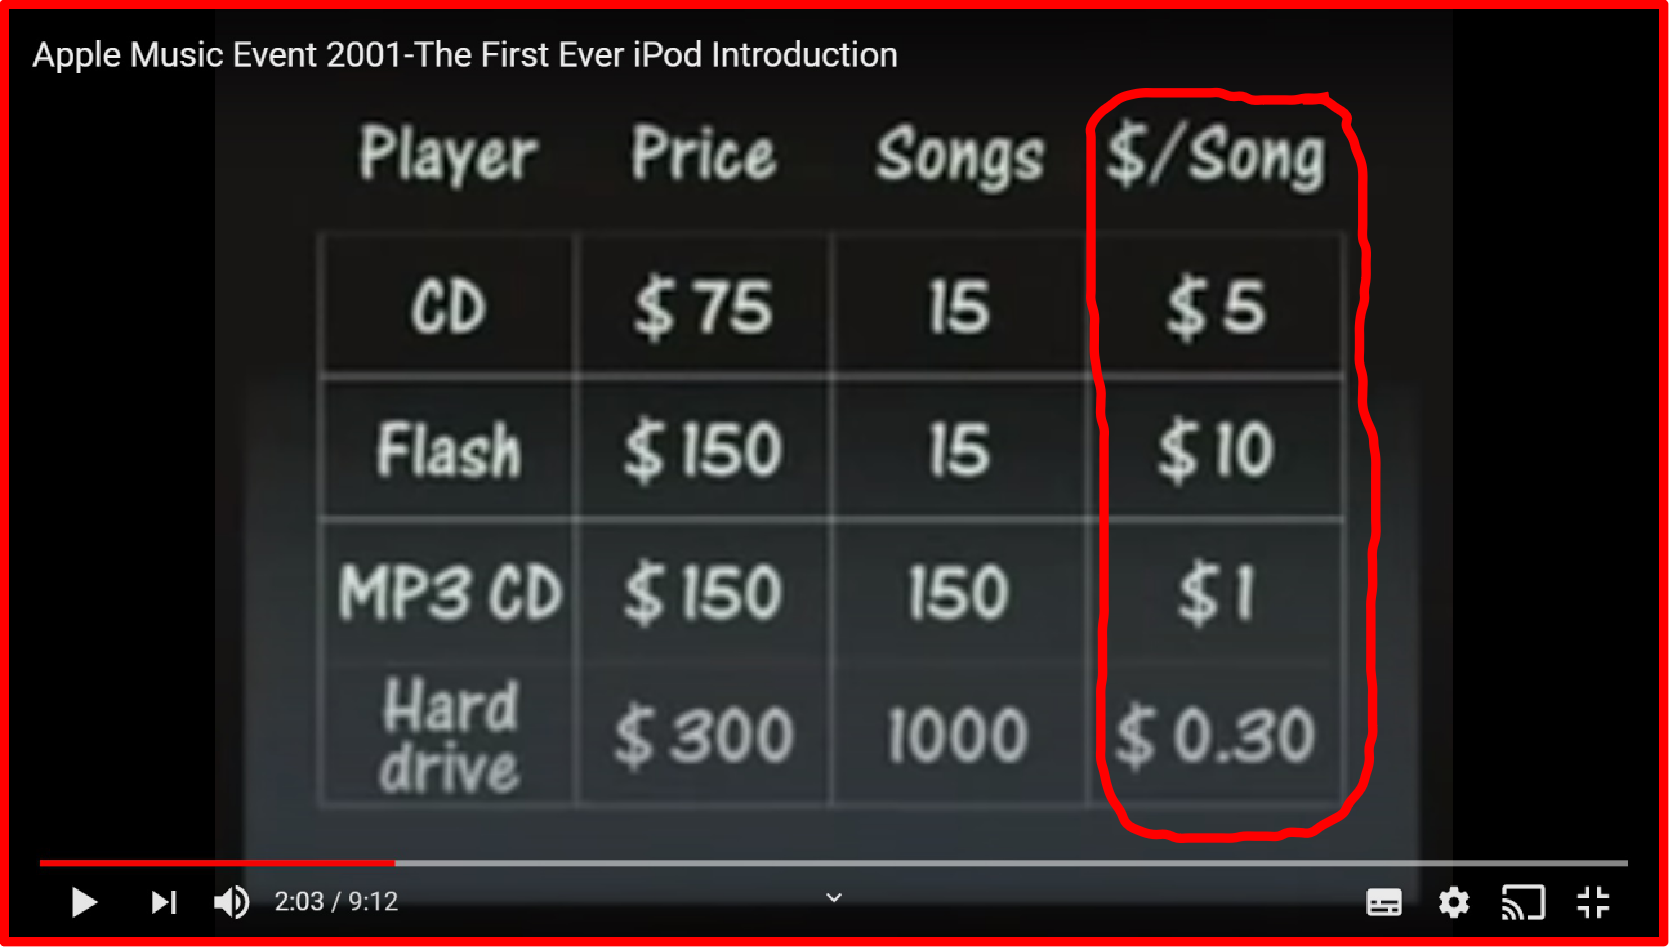 screenshot of price grid showing prices, number of songs, and cost per song highlighting cost per song for different media